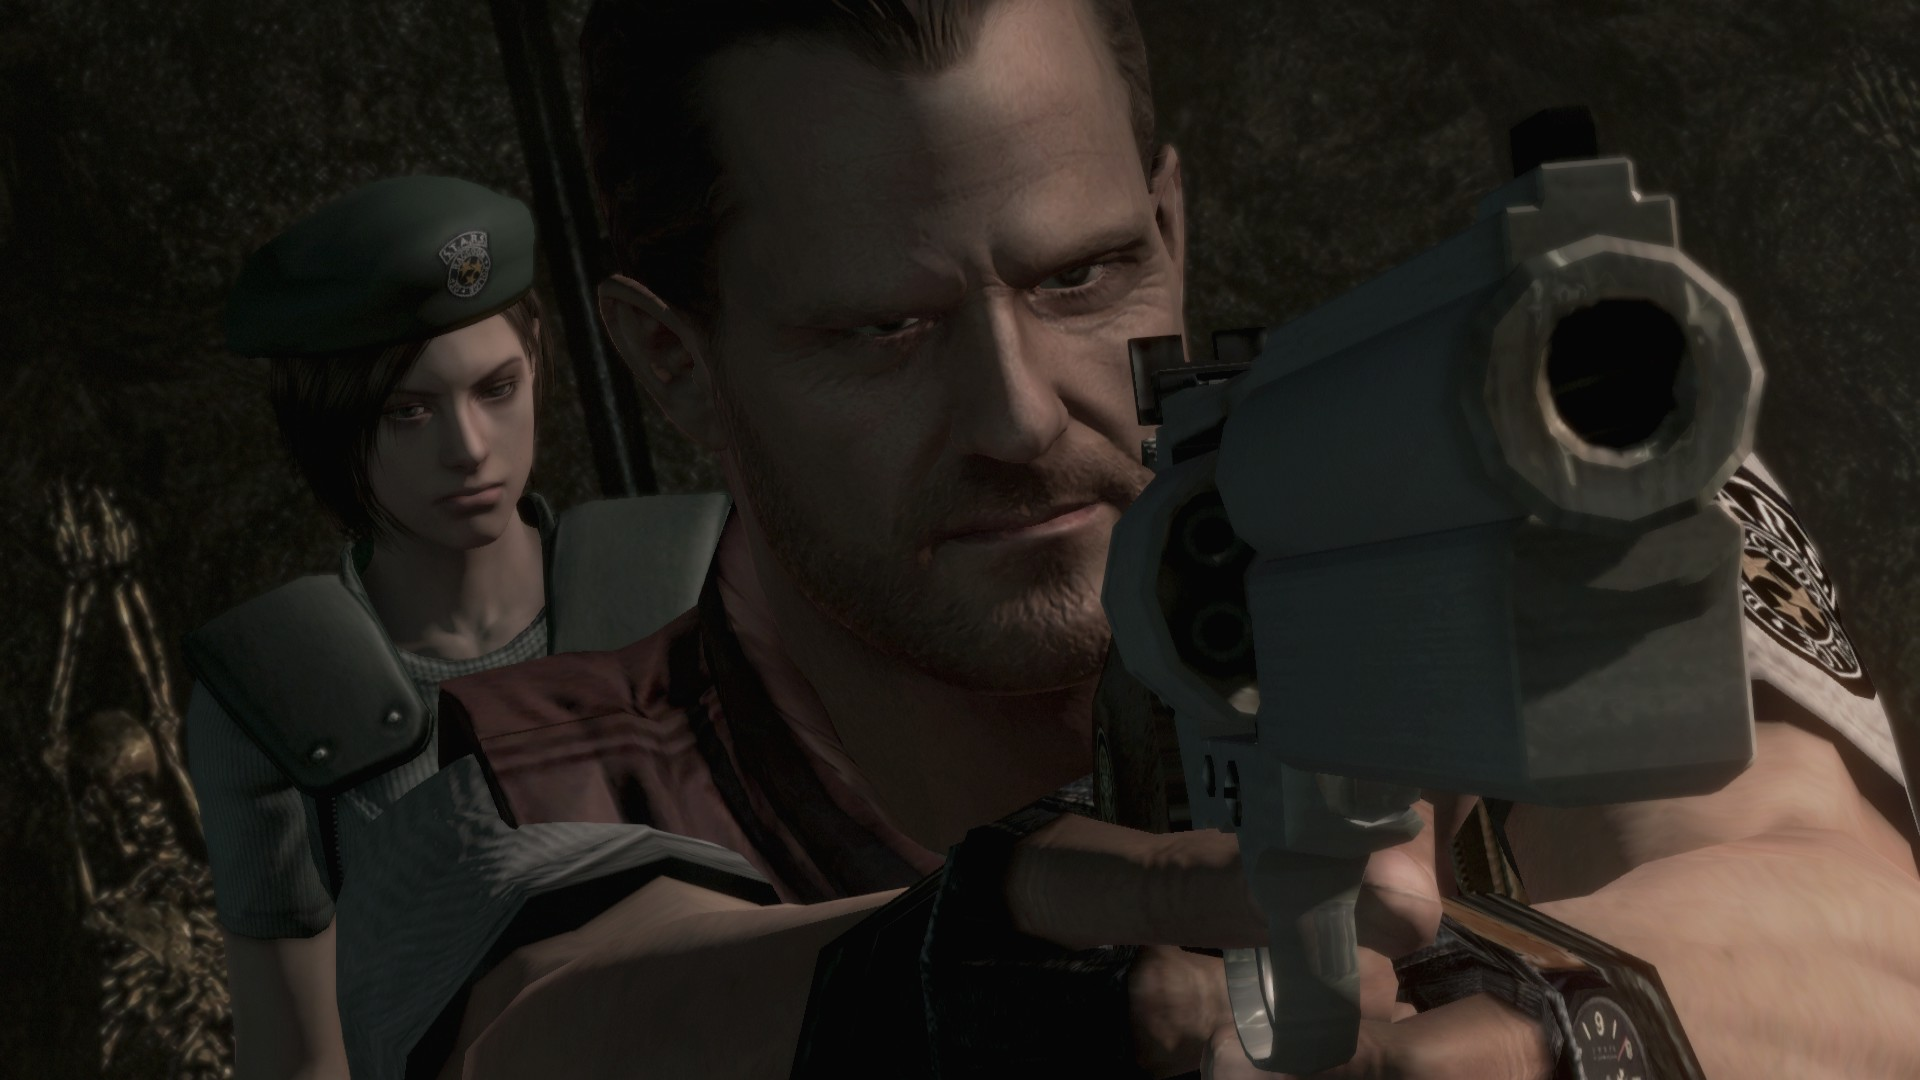 Resident Evil HD remaster sells 1M copies